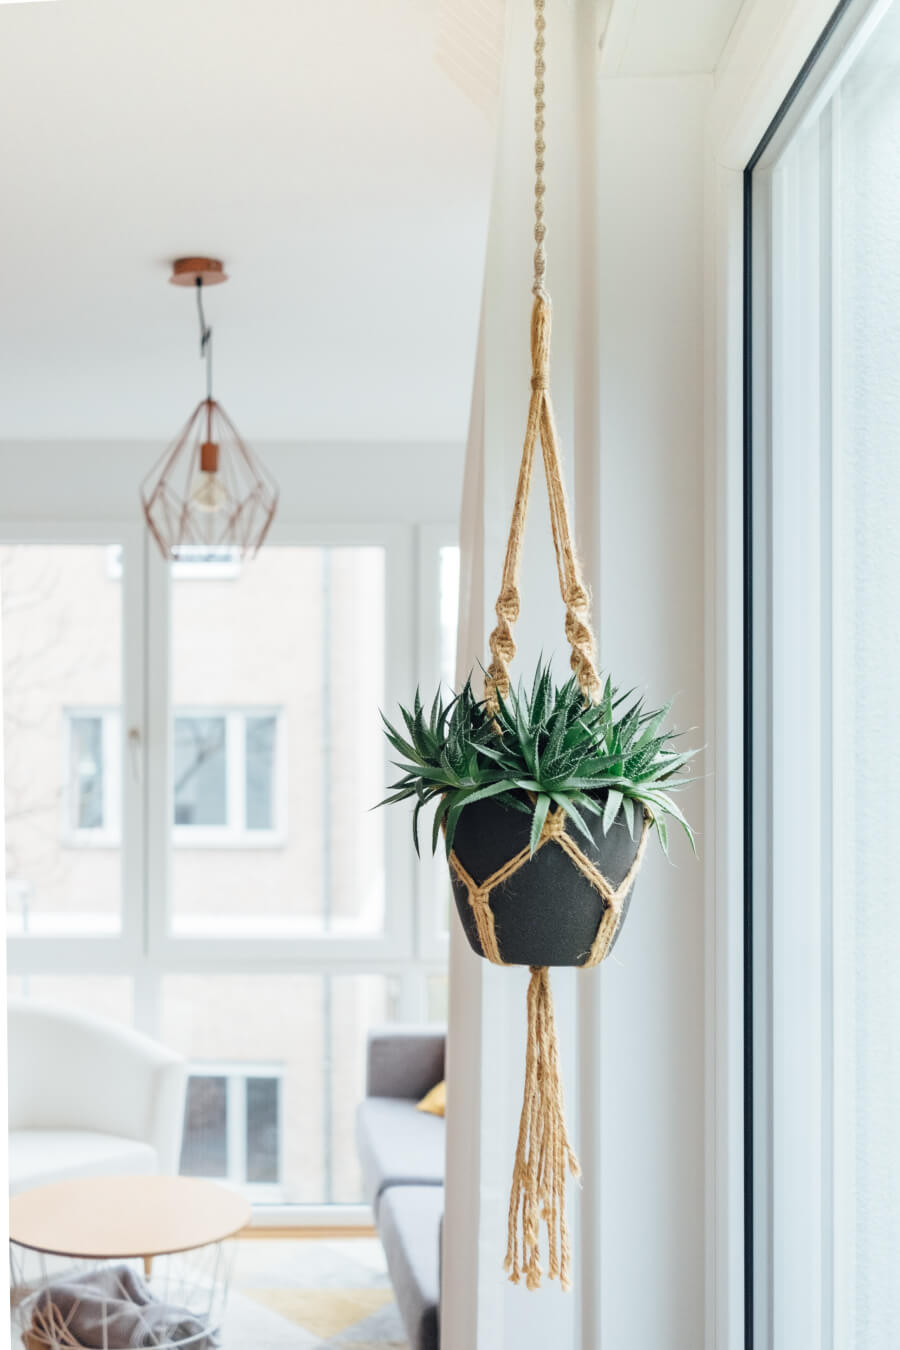 A potted plant hanging from the ceiling with a rope plant hanger